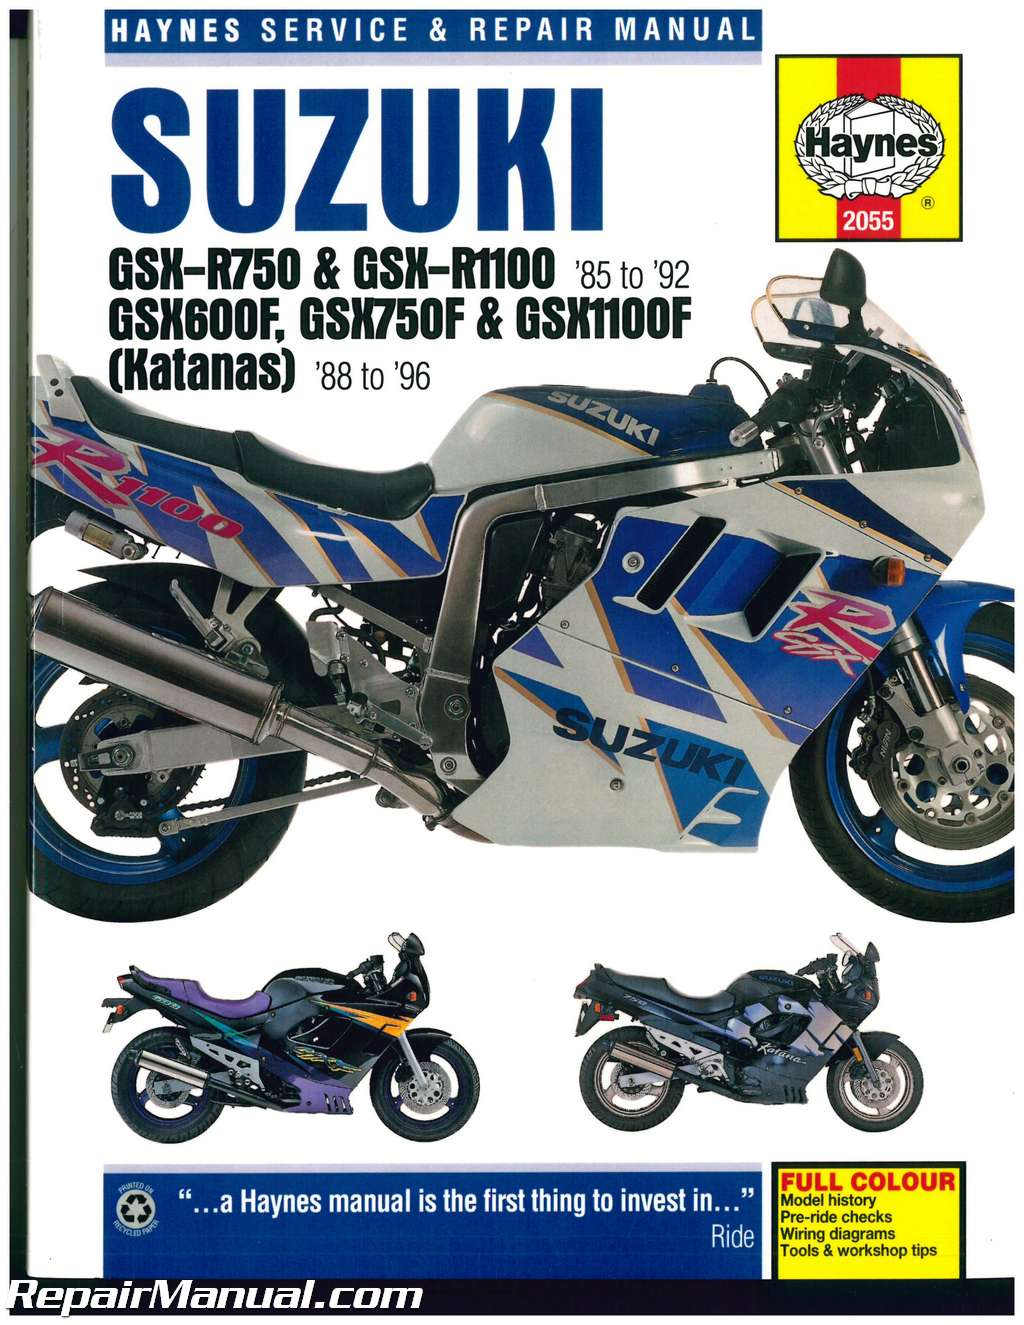 Gsxr Ab also Imag furthermore Suzuki Gsxr Wiring Diagram Of Gsxr Wiring Diagram likewise Wiring Suzuki Gsx R moreover Gsxr Wiring Diagram Dolgular Of Gsxr Wiring Diagram. on suzuki gsx r 600 wiring diagram